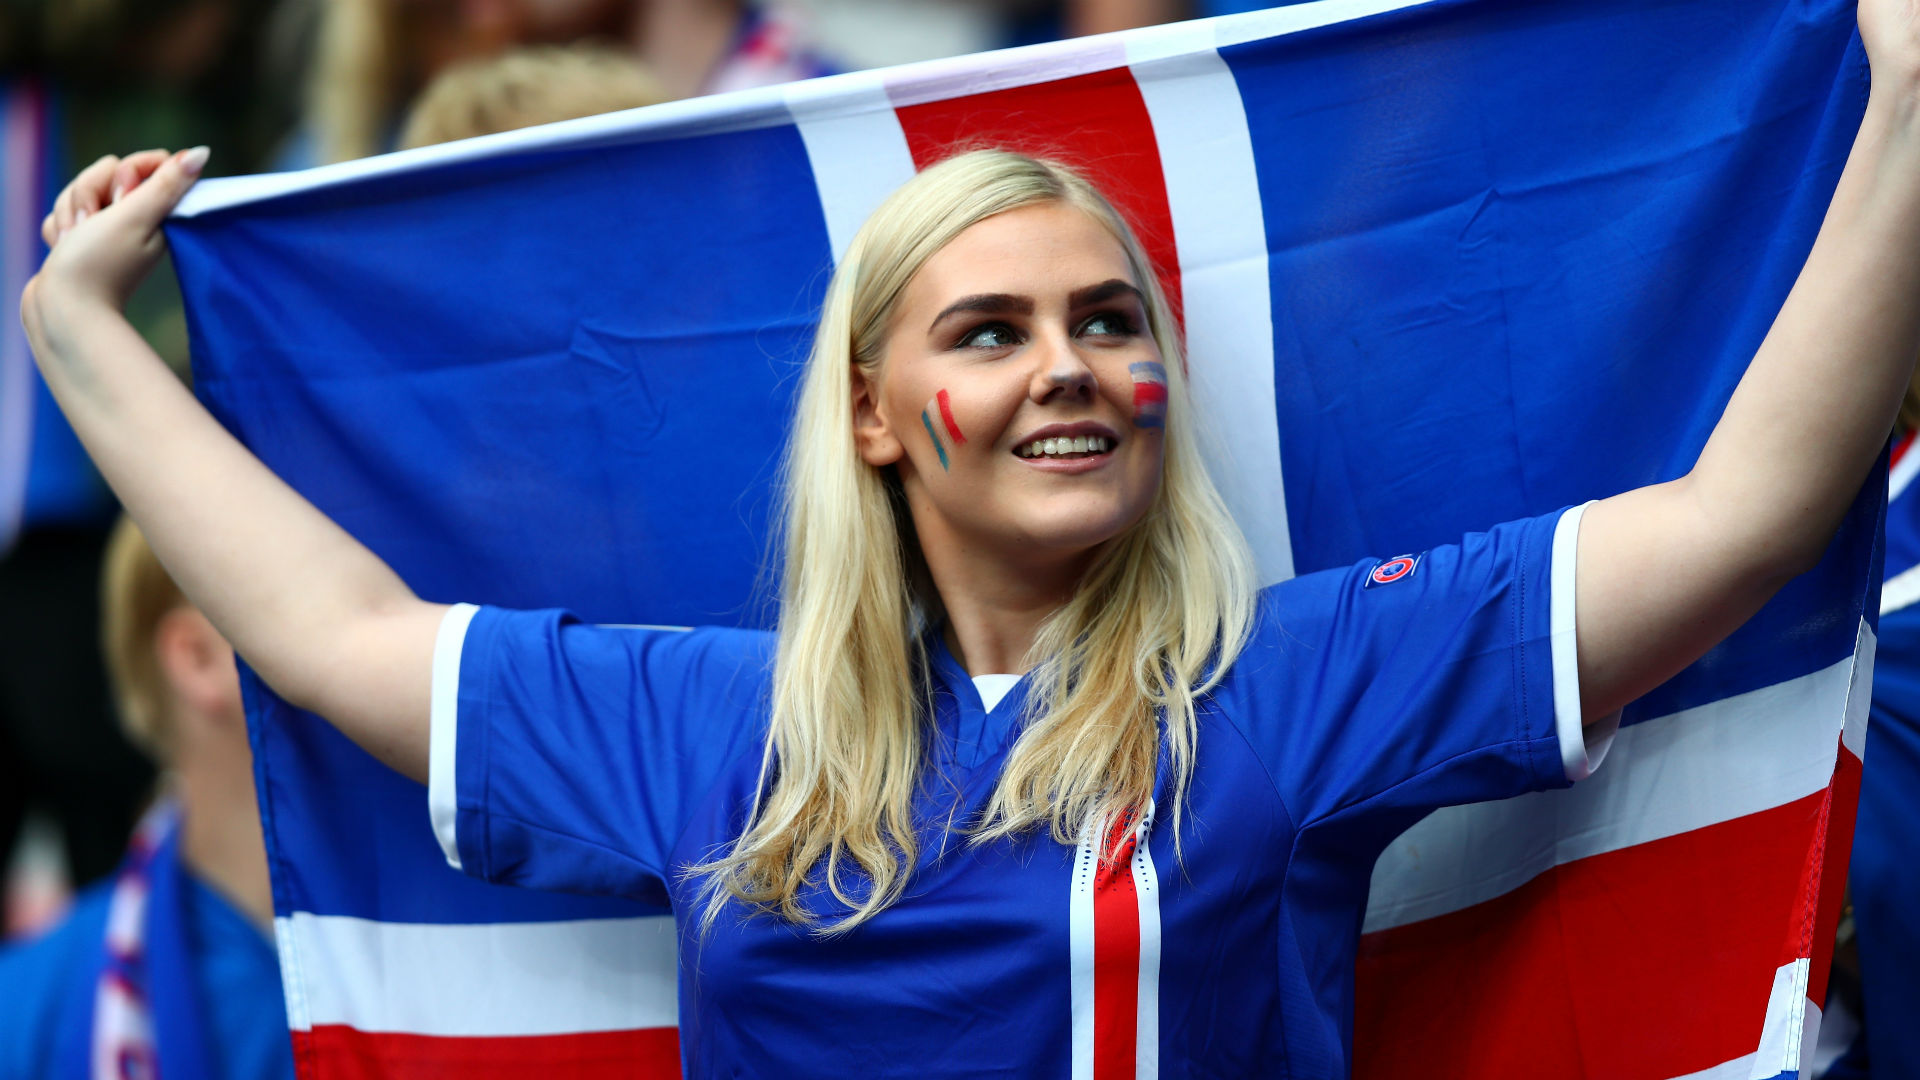 http://images.performgroup.com/di/library/GOAL/66/9/france-iceland-uefa-euro-2016_lj3qsy9ph06s1ddqh39f3pgua.jpg?t=-1309730019